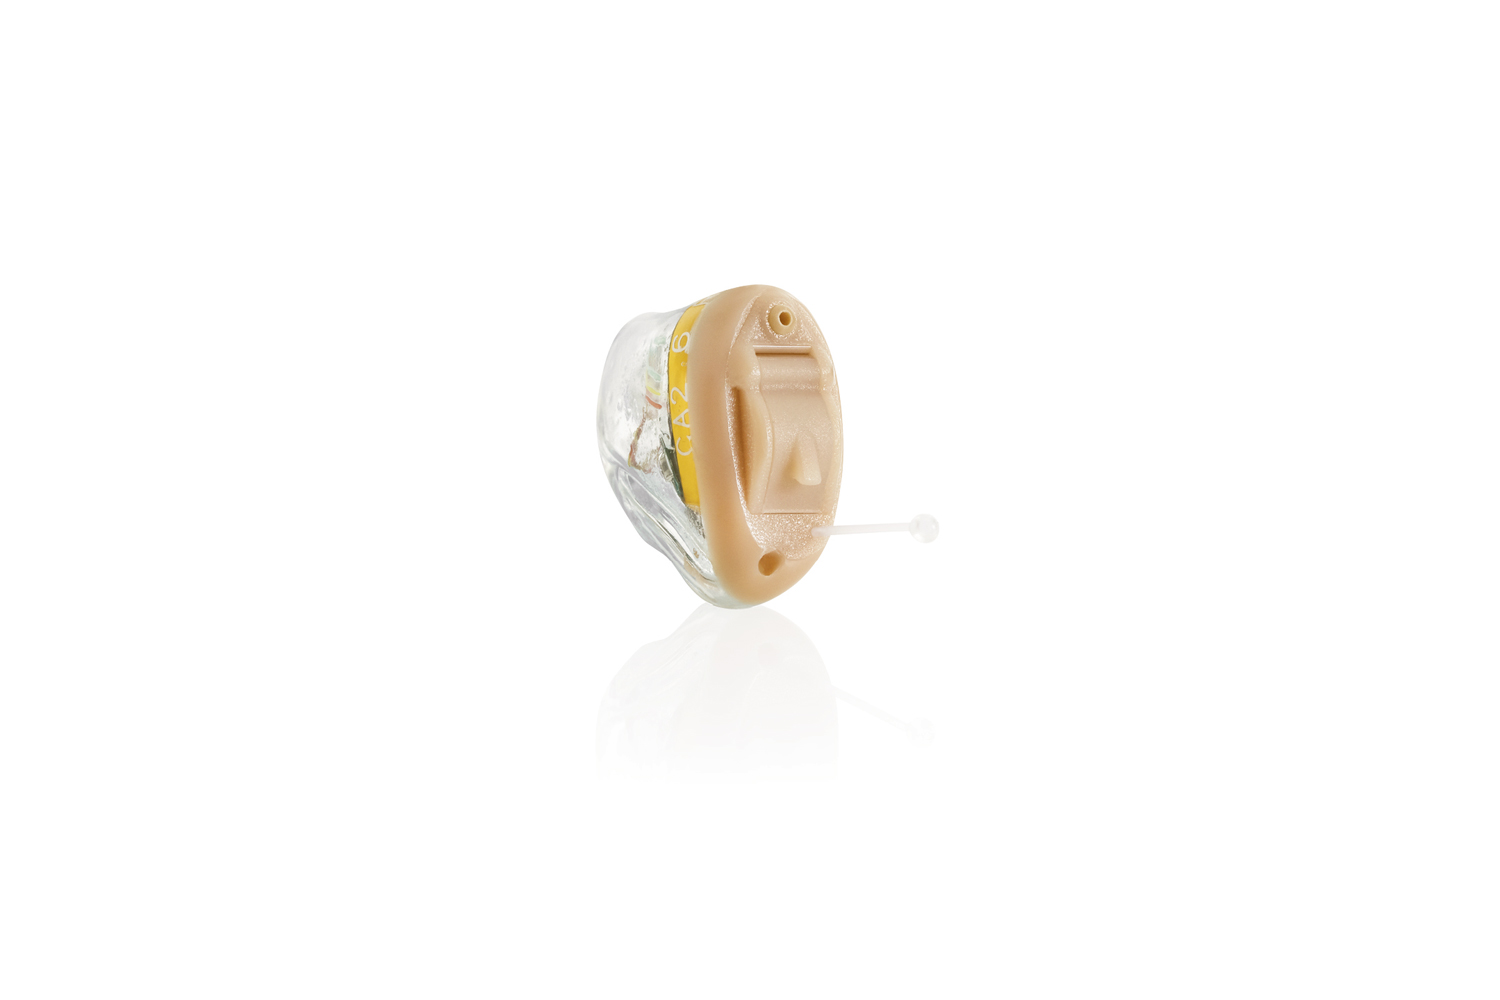 Hearing Aid Technology Asi Audiology Healthcare In Iowa Are Many Types Of Aids Which Vary Size Power And Circuitry Completely Canal